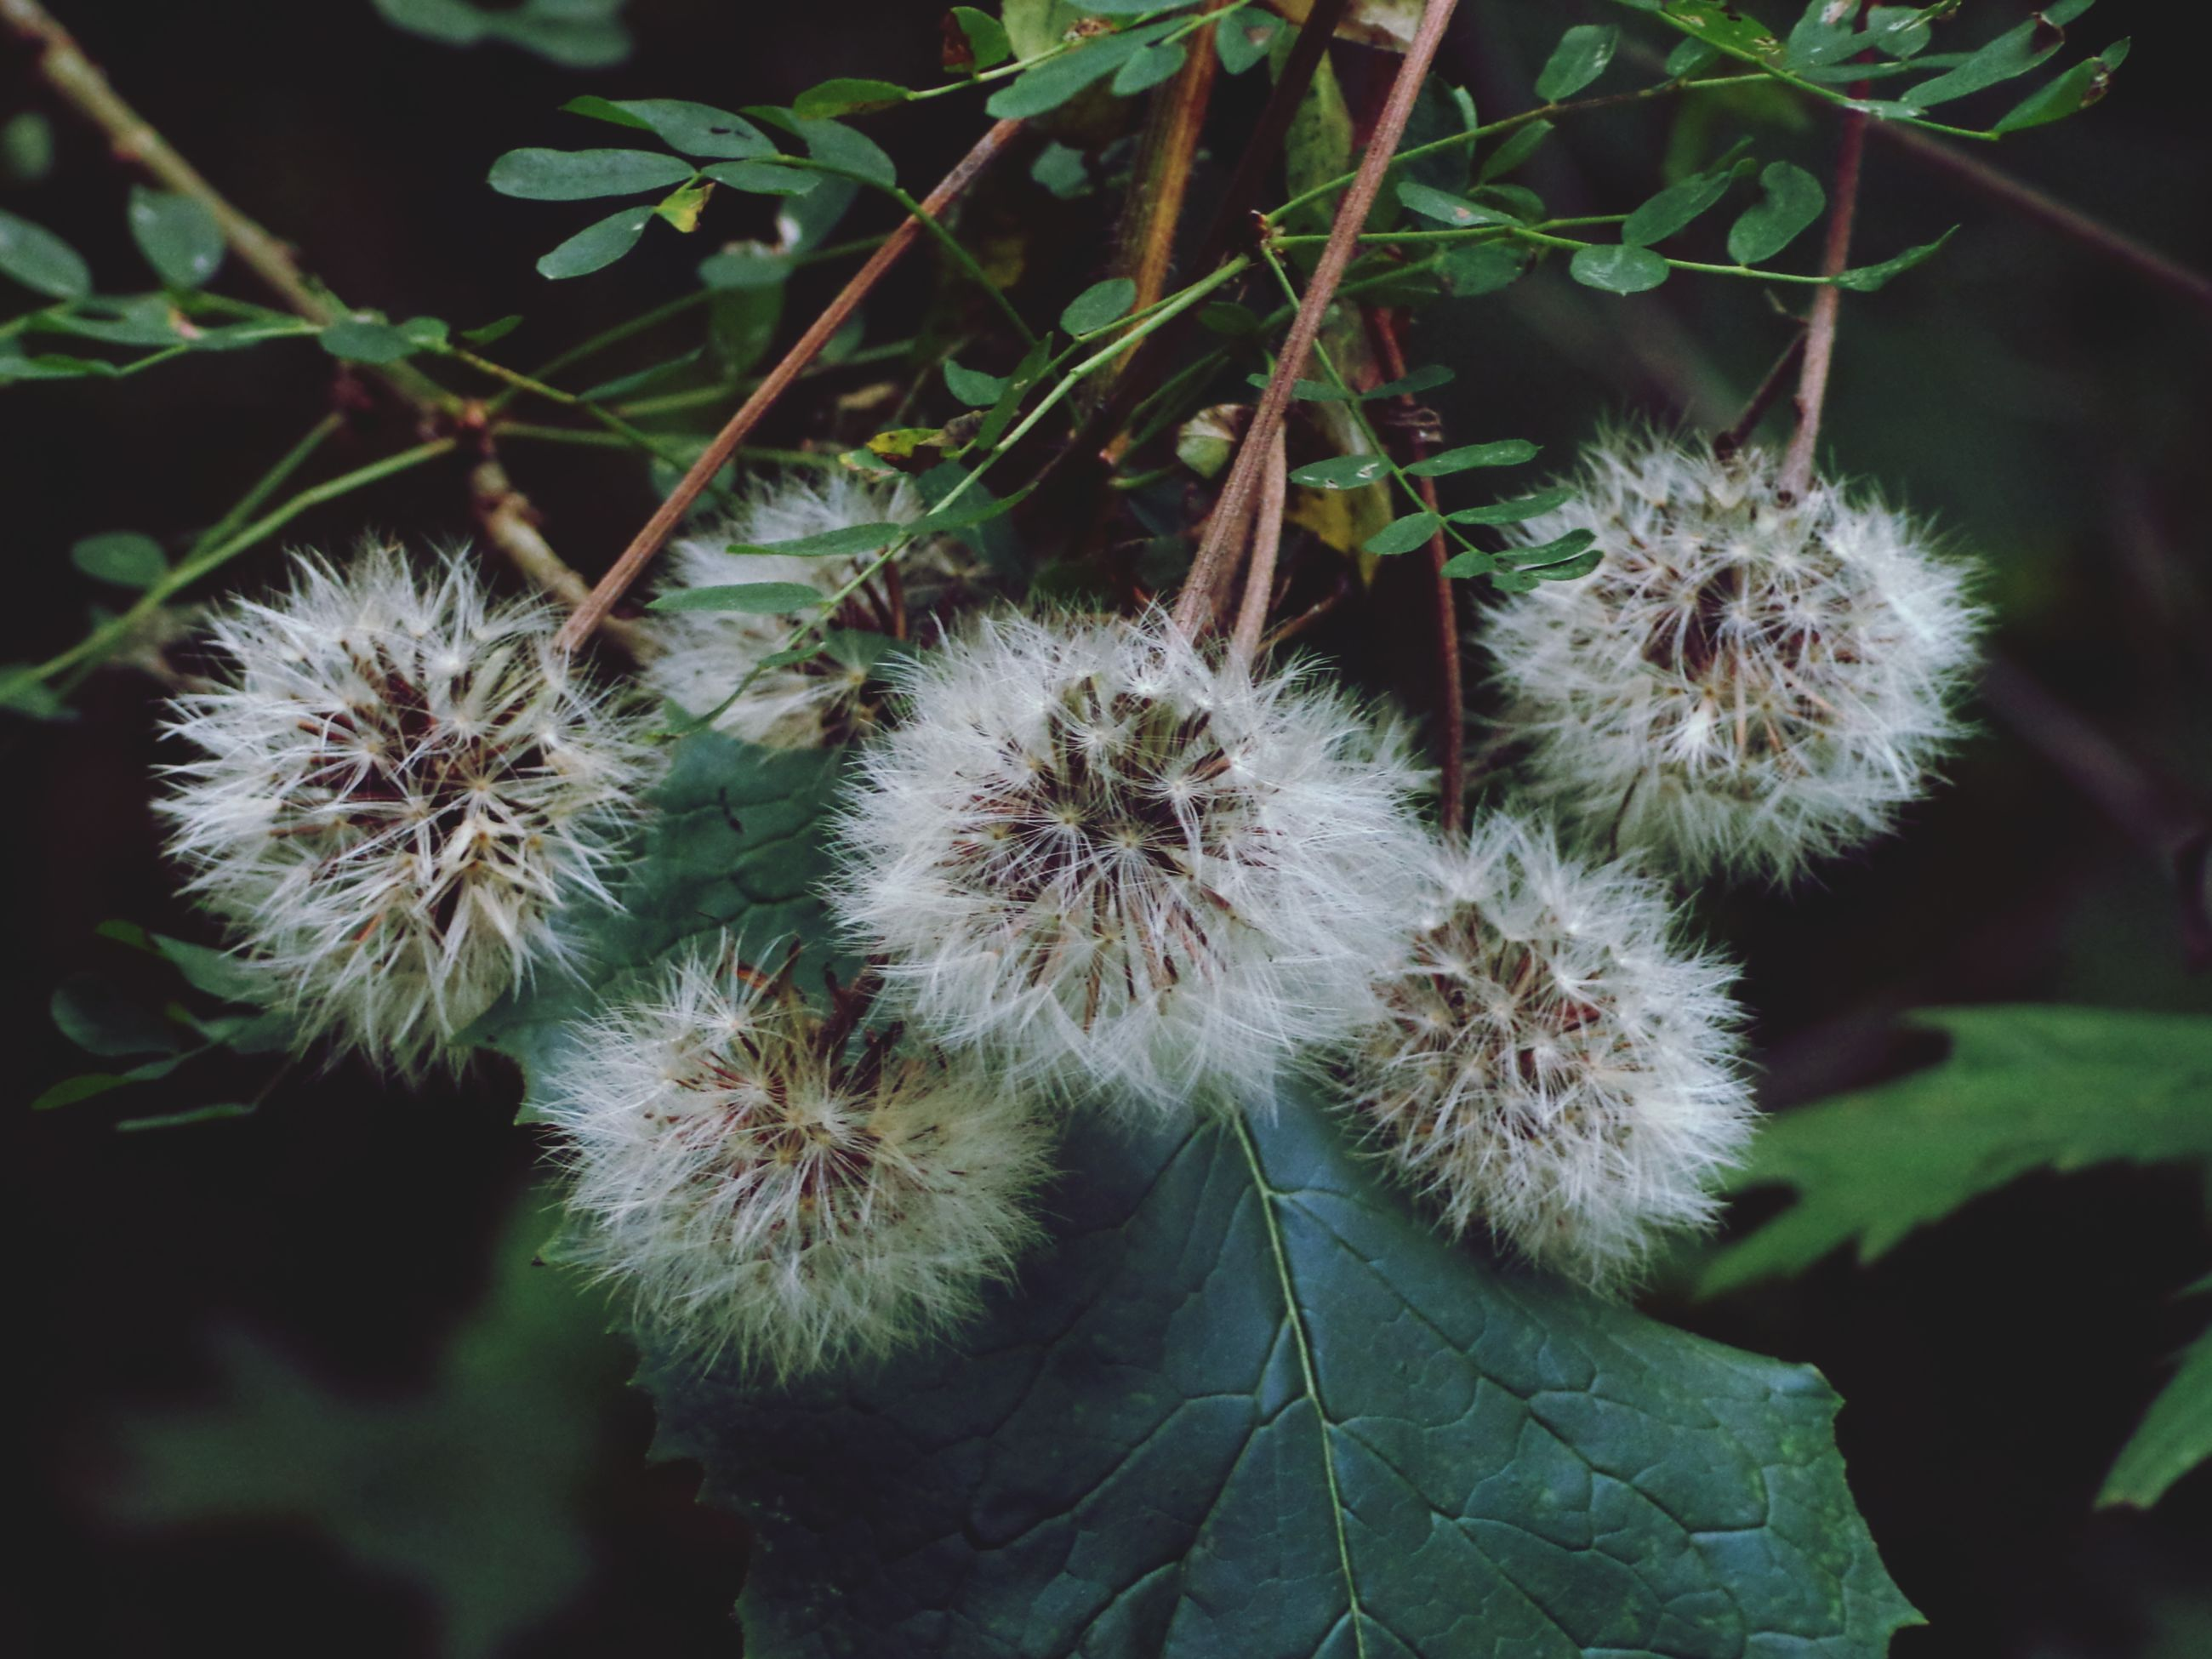 growth, flower, fragility, freshness, plant, close-up, nature, flower head, dandelion, white color, beauty in nature, focus on foreground, leaf, high angle view, uncultivated, botany, outdoors, day, blooming, softness